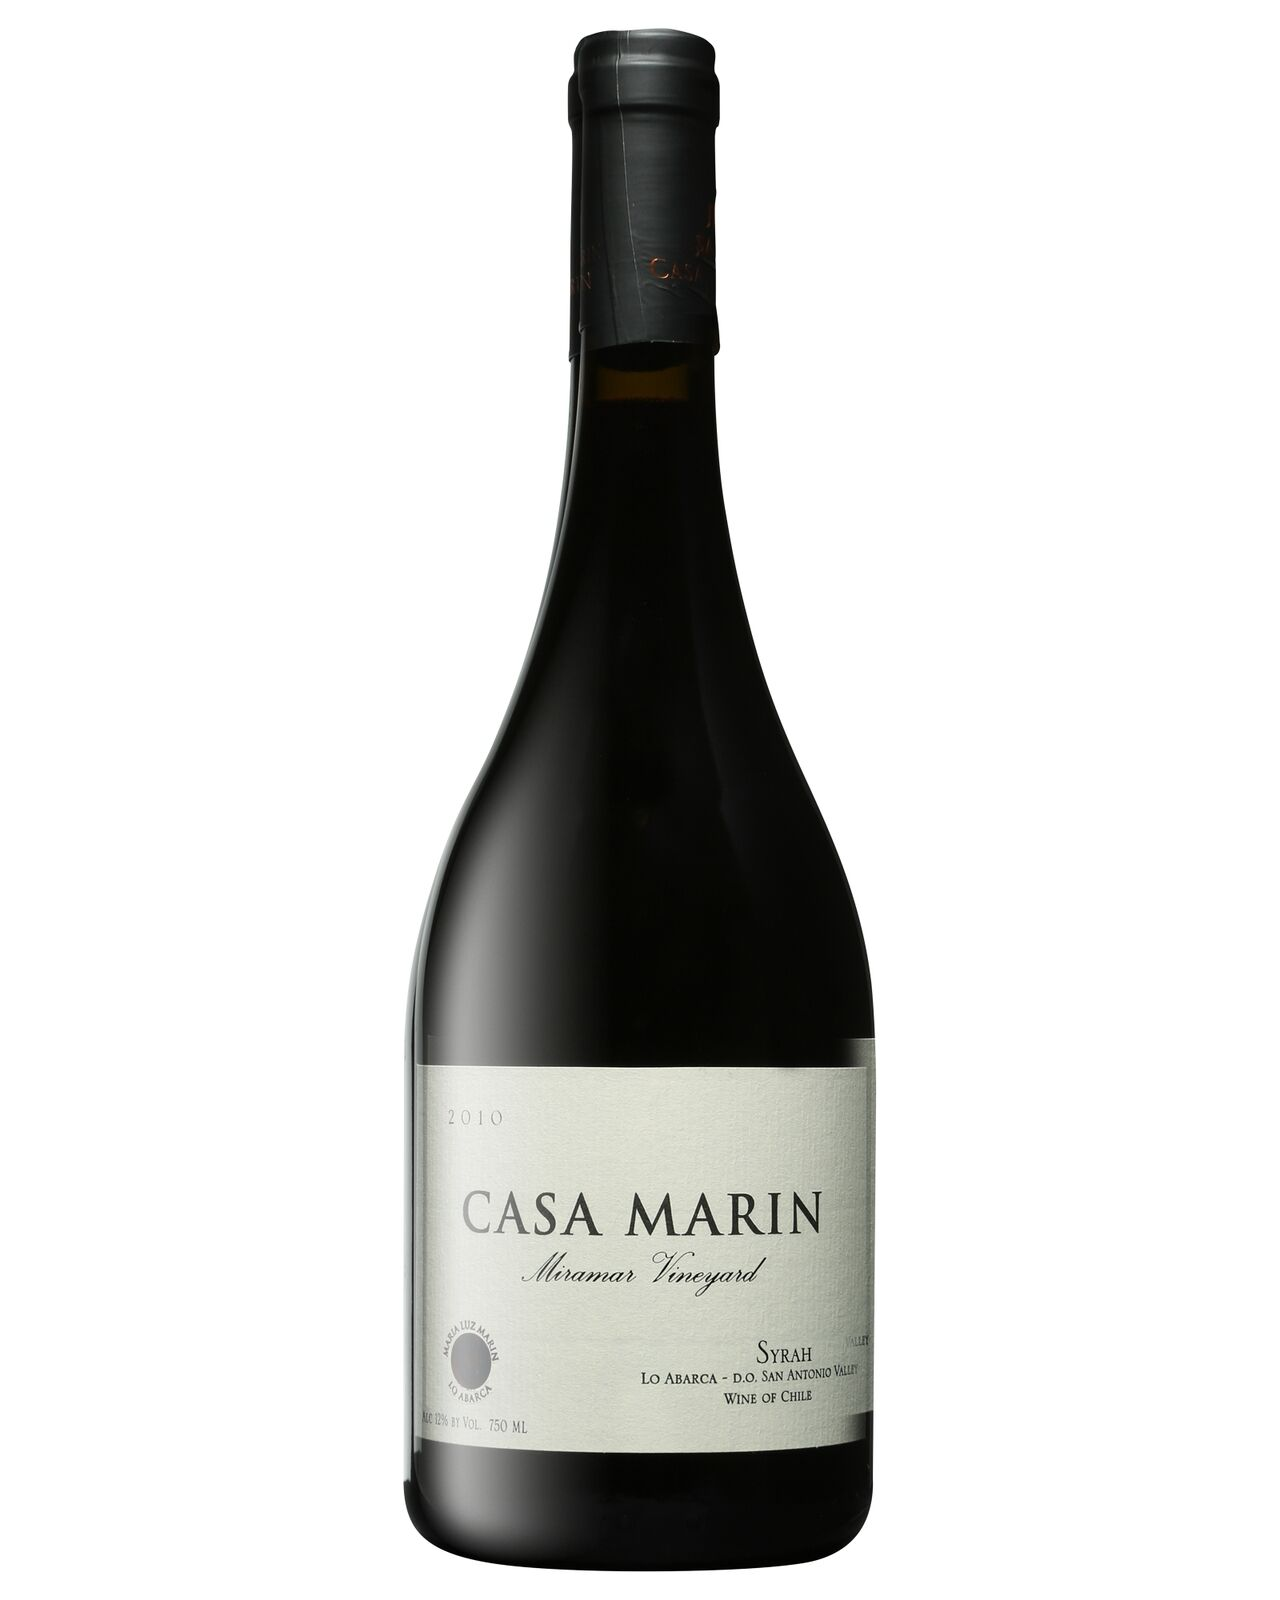 Casa Mar&#237n Miramar Vineyard Syrah 2010 bottle Shiraz Dry Red Wine 750mL